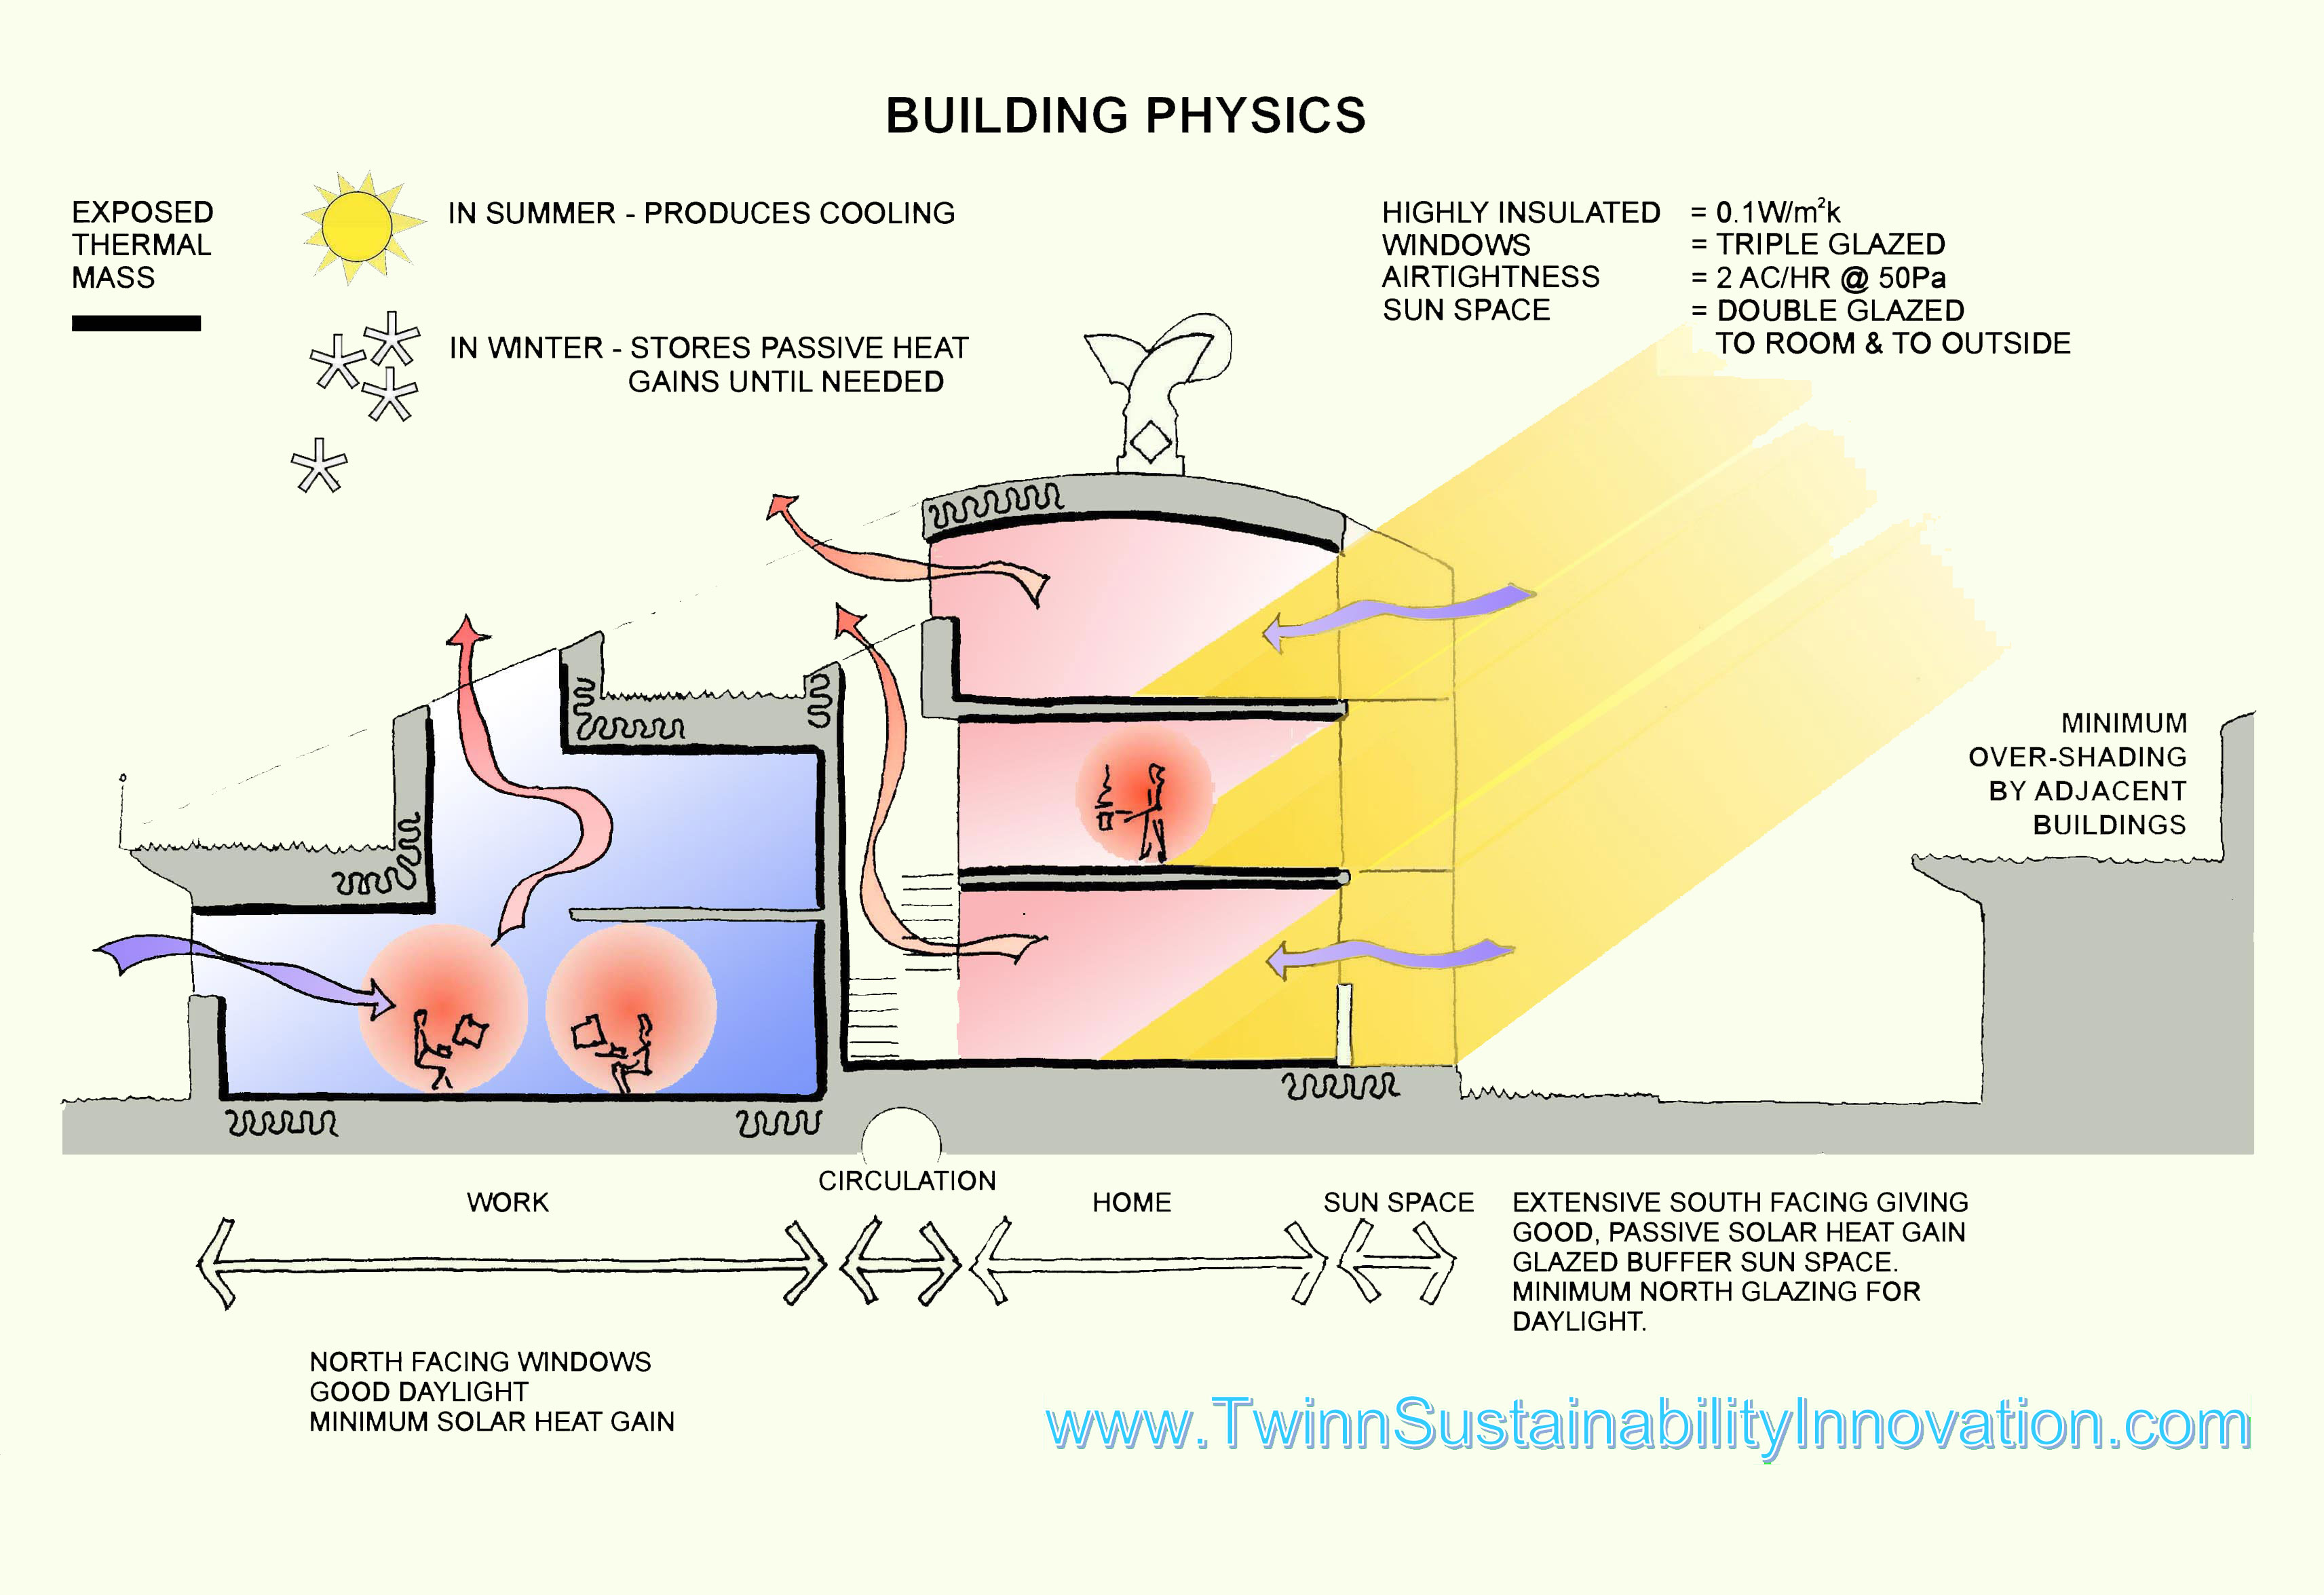 83541 likewise Hassn Fathy Sustainable Architecture further  as well The Beach Coffs Harbour Nsw in addition Timber Frame House A Zero Architects. on zero energy building